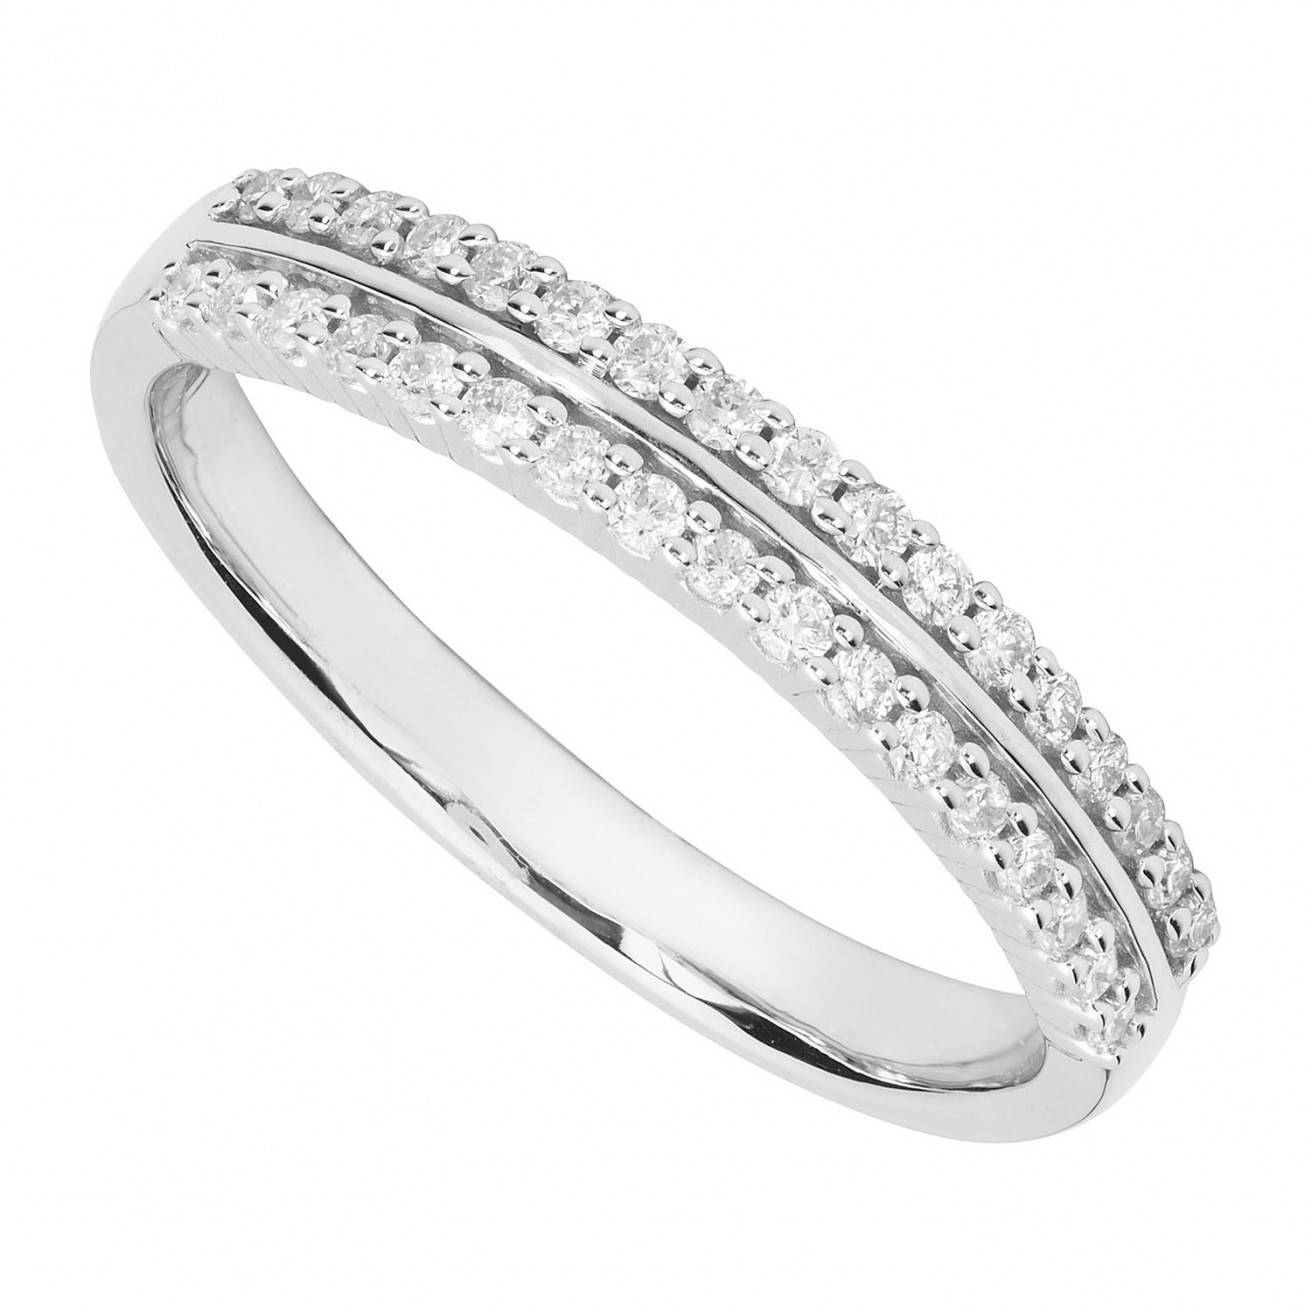 Platinum 5mm Classic Flat Wedding Ring For Diamond And Platinum Wedding Rings (View 13 of 15)